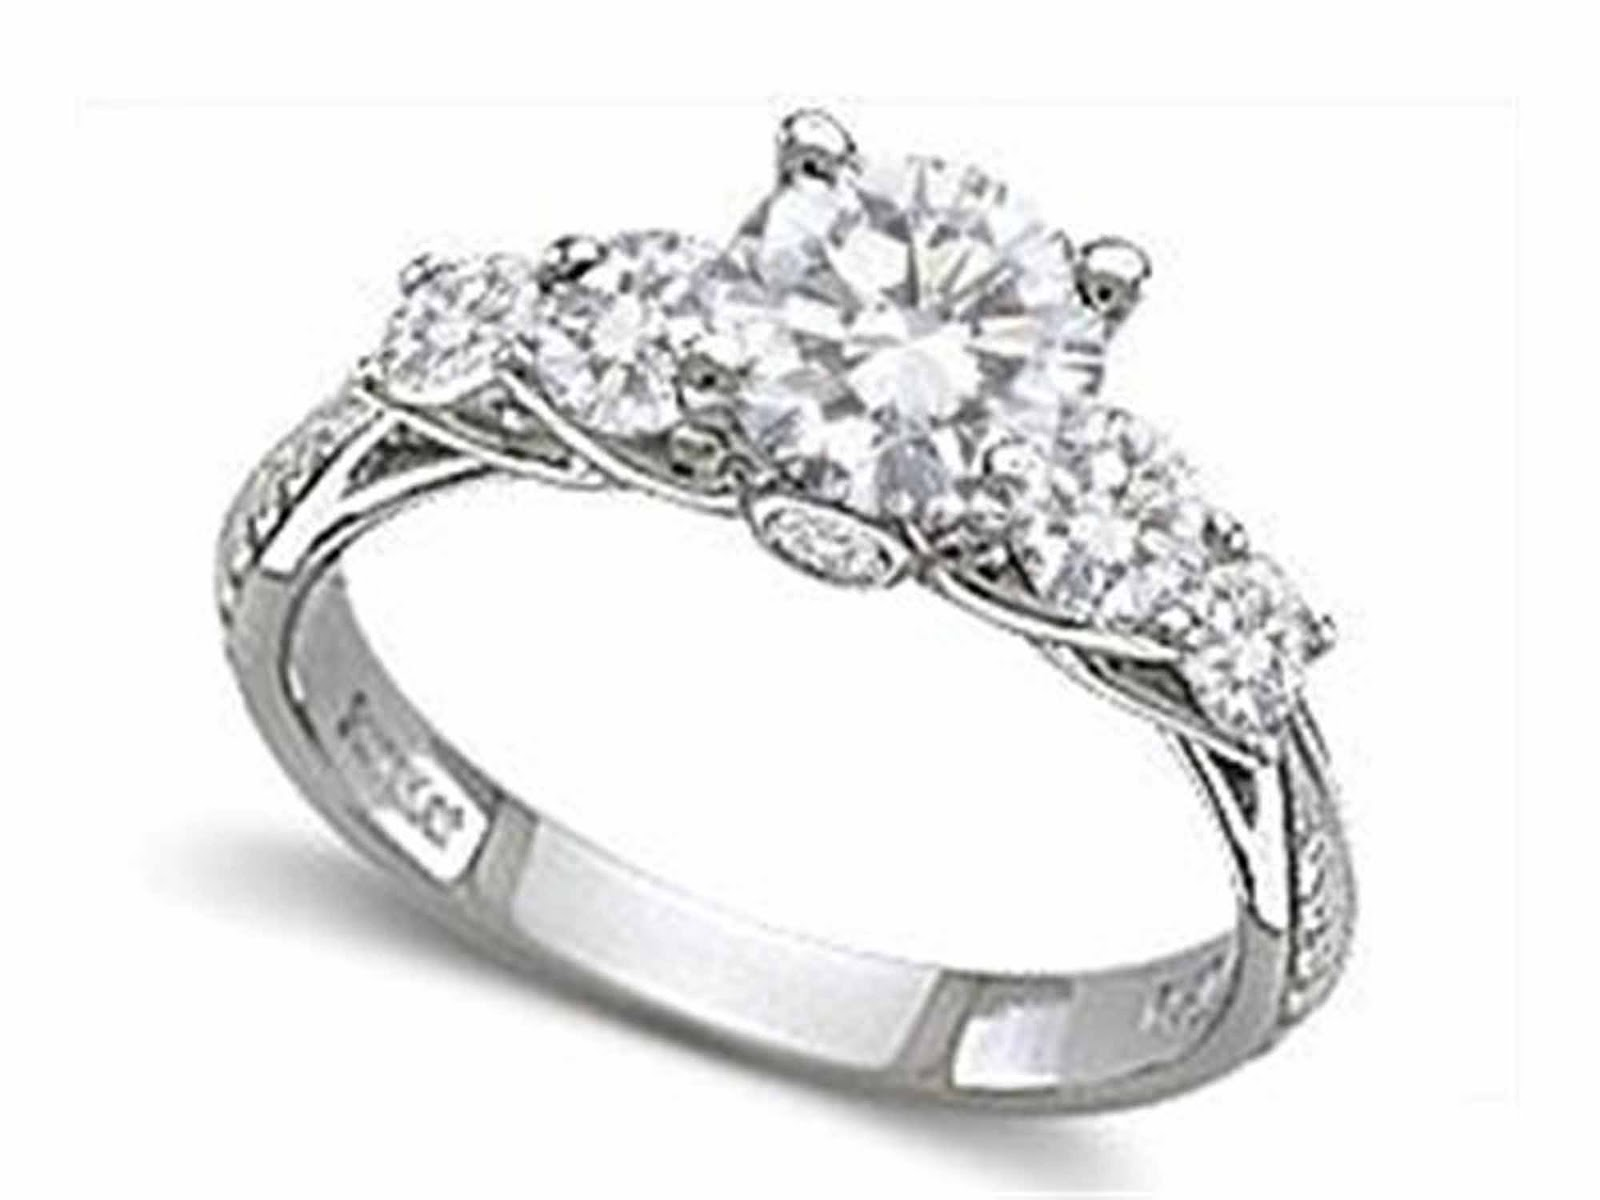 picking inexpensive promise rings for inexpensive wedding rings Picking the inexpensive promise rings for her